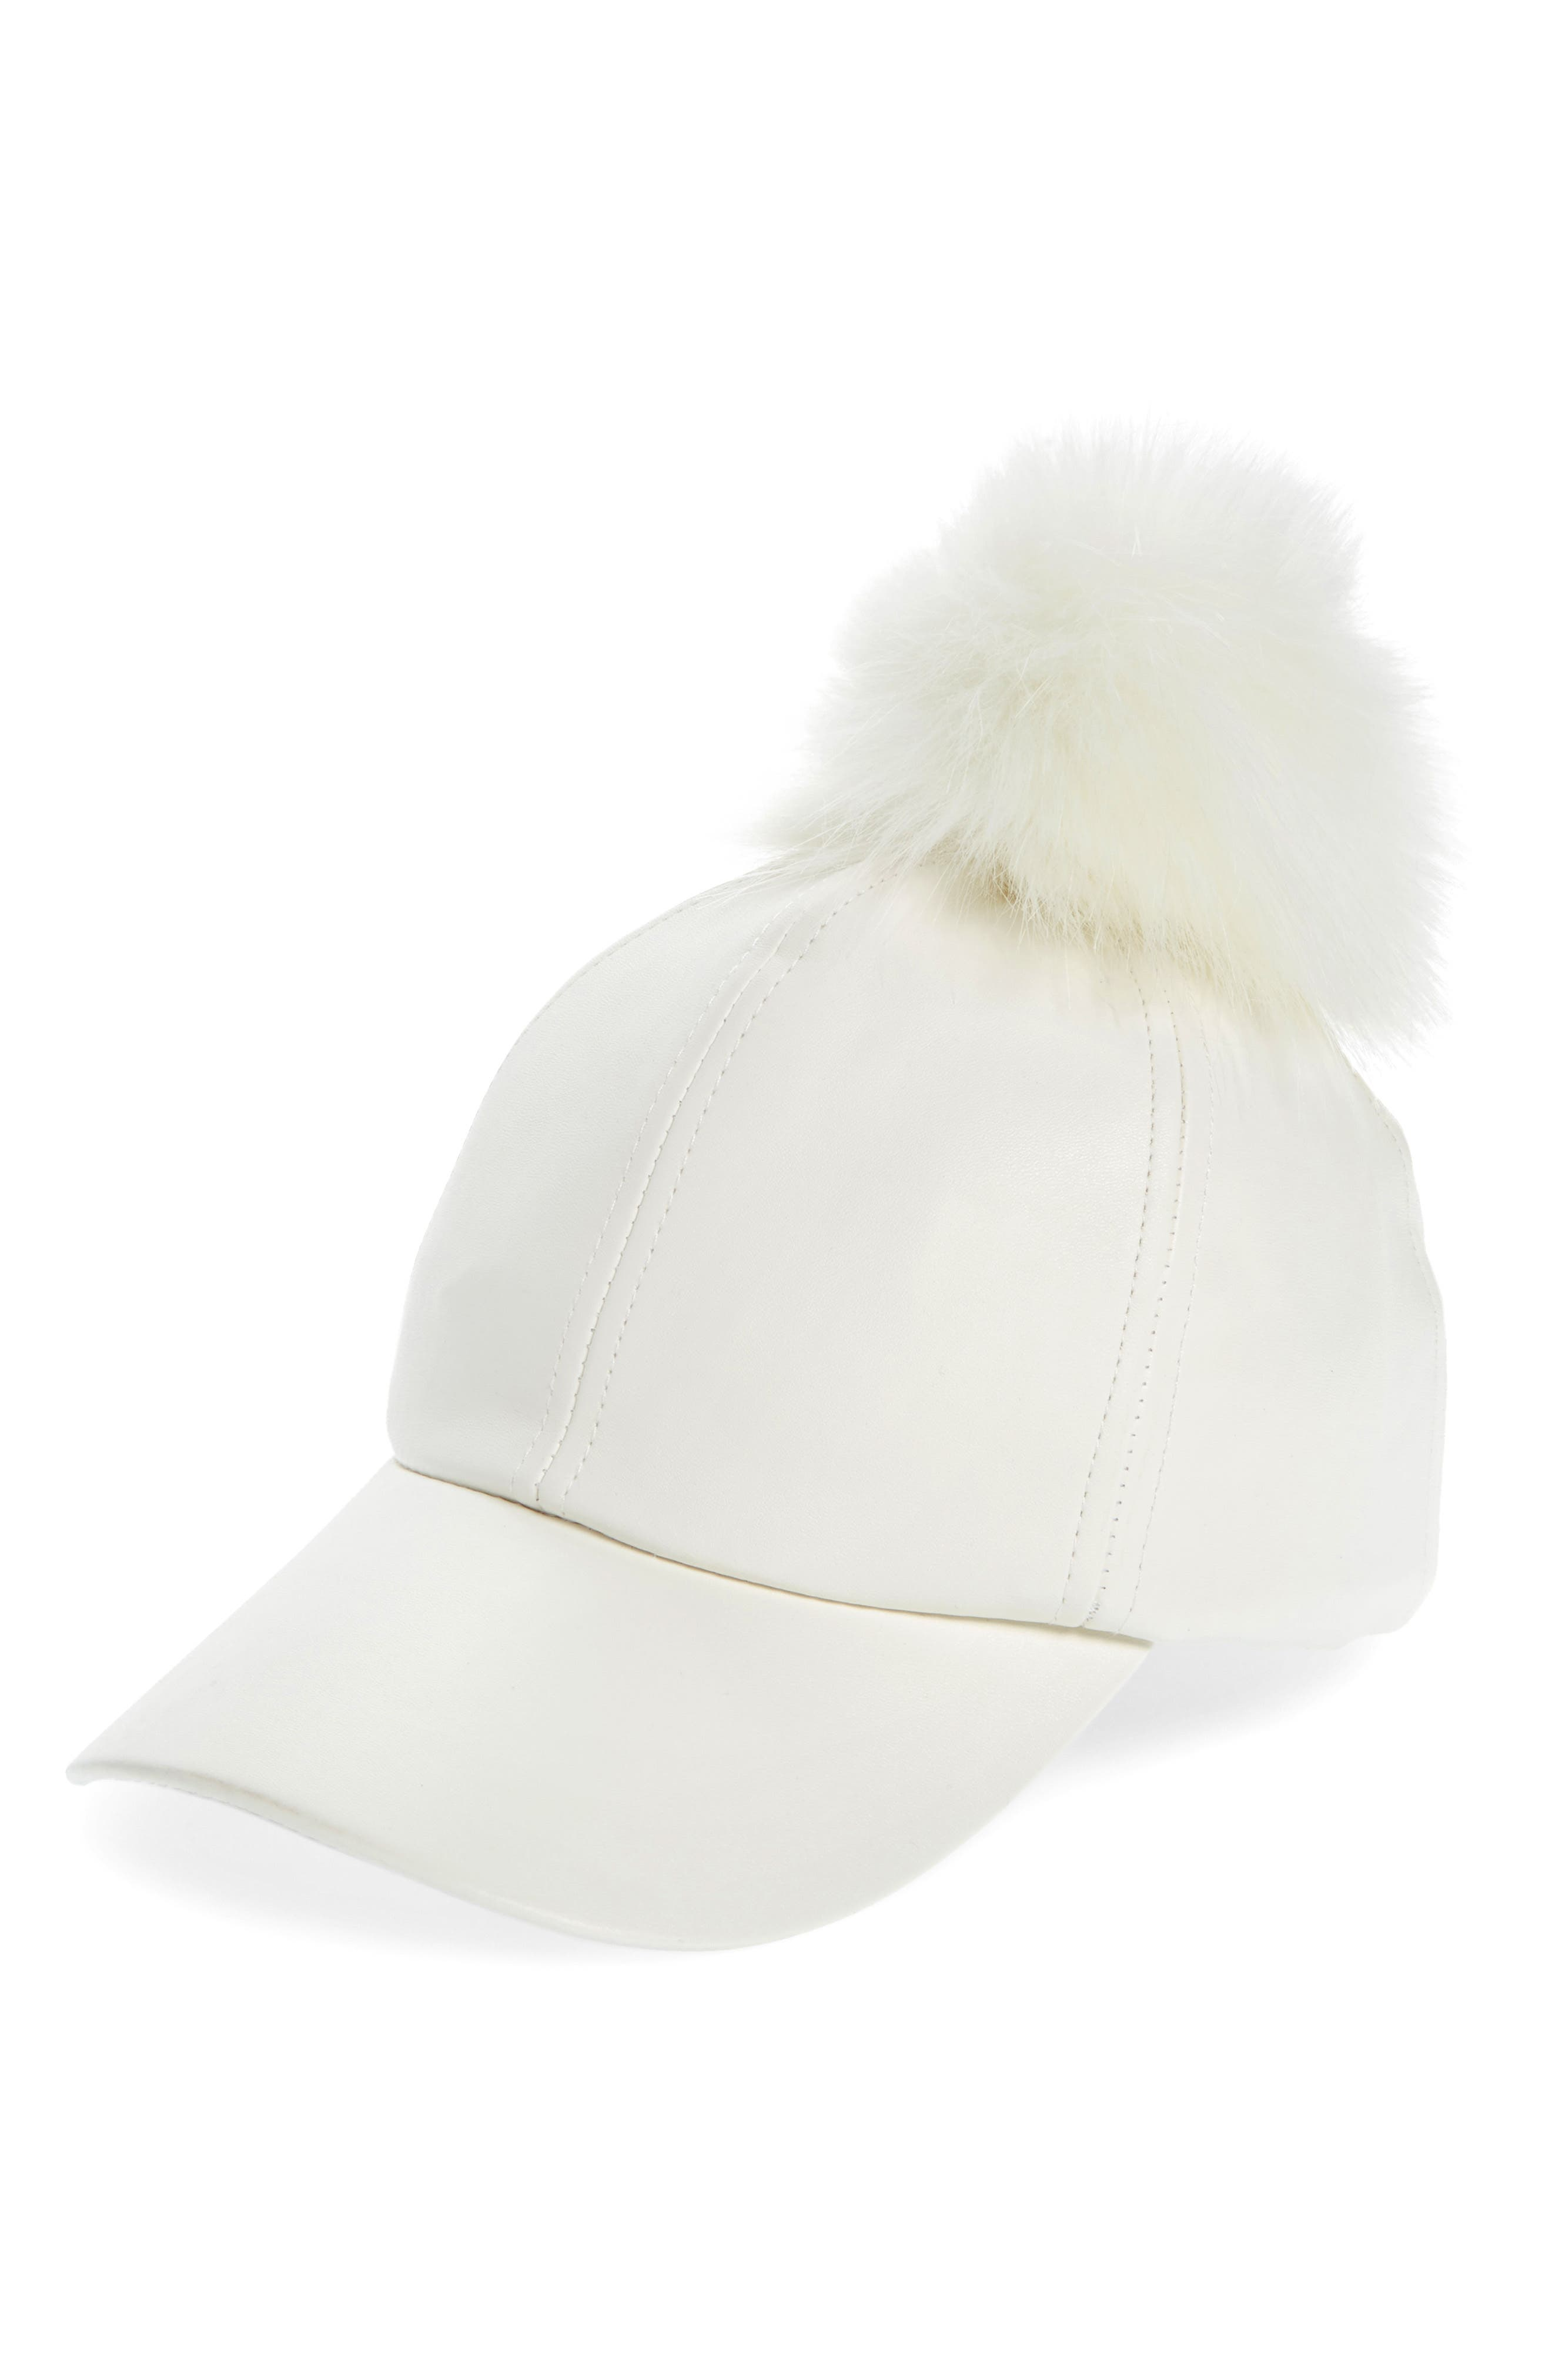 Alternate Image 1 Selected - Evelyn K Faux Leather Cap with Faux Fur Pompom